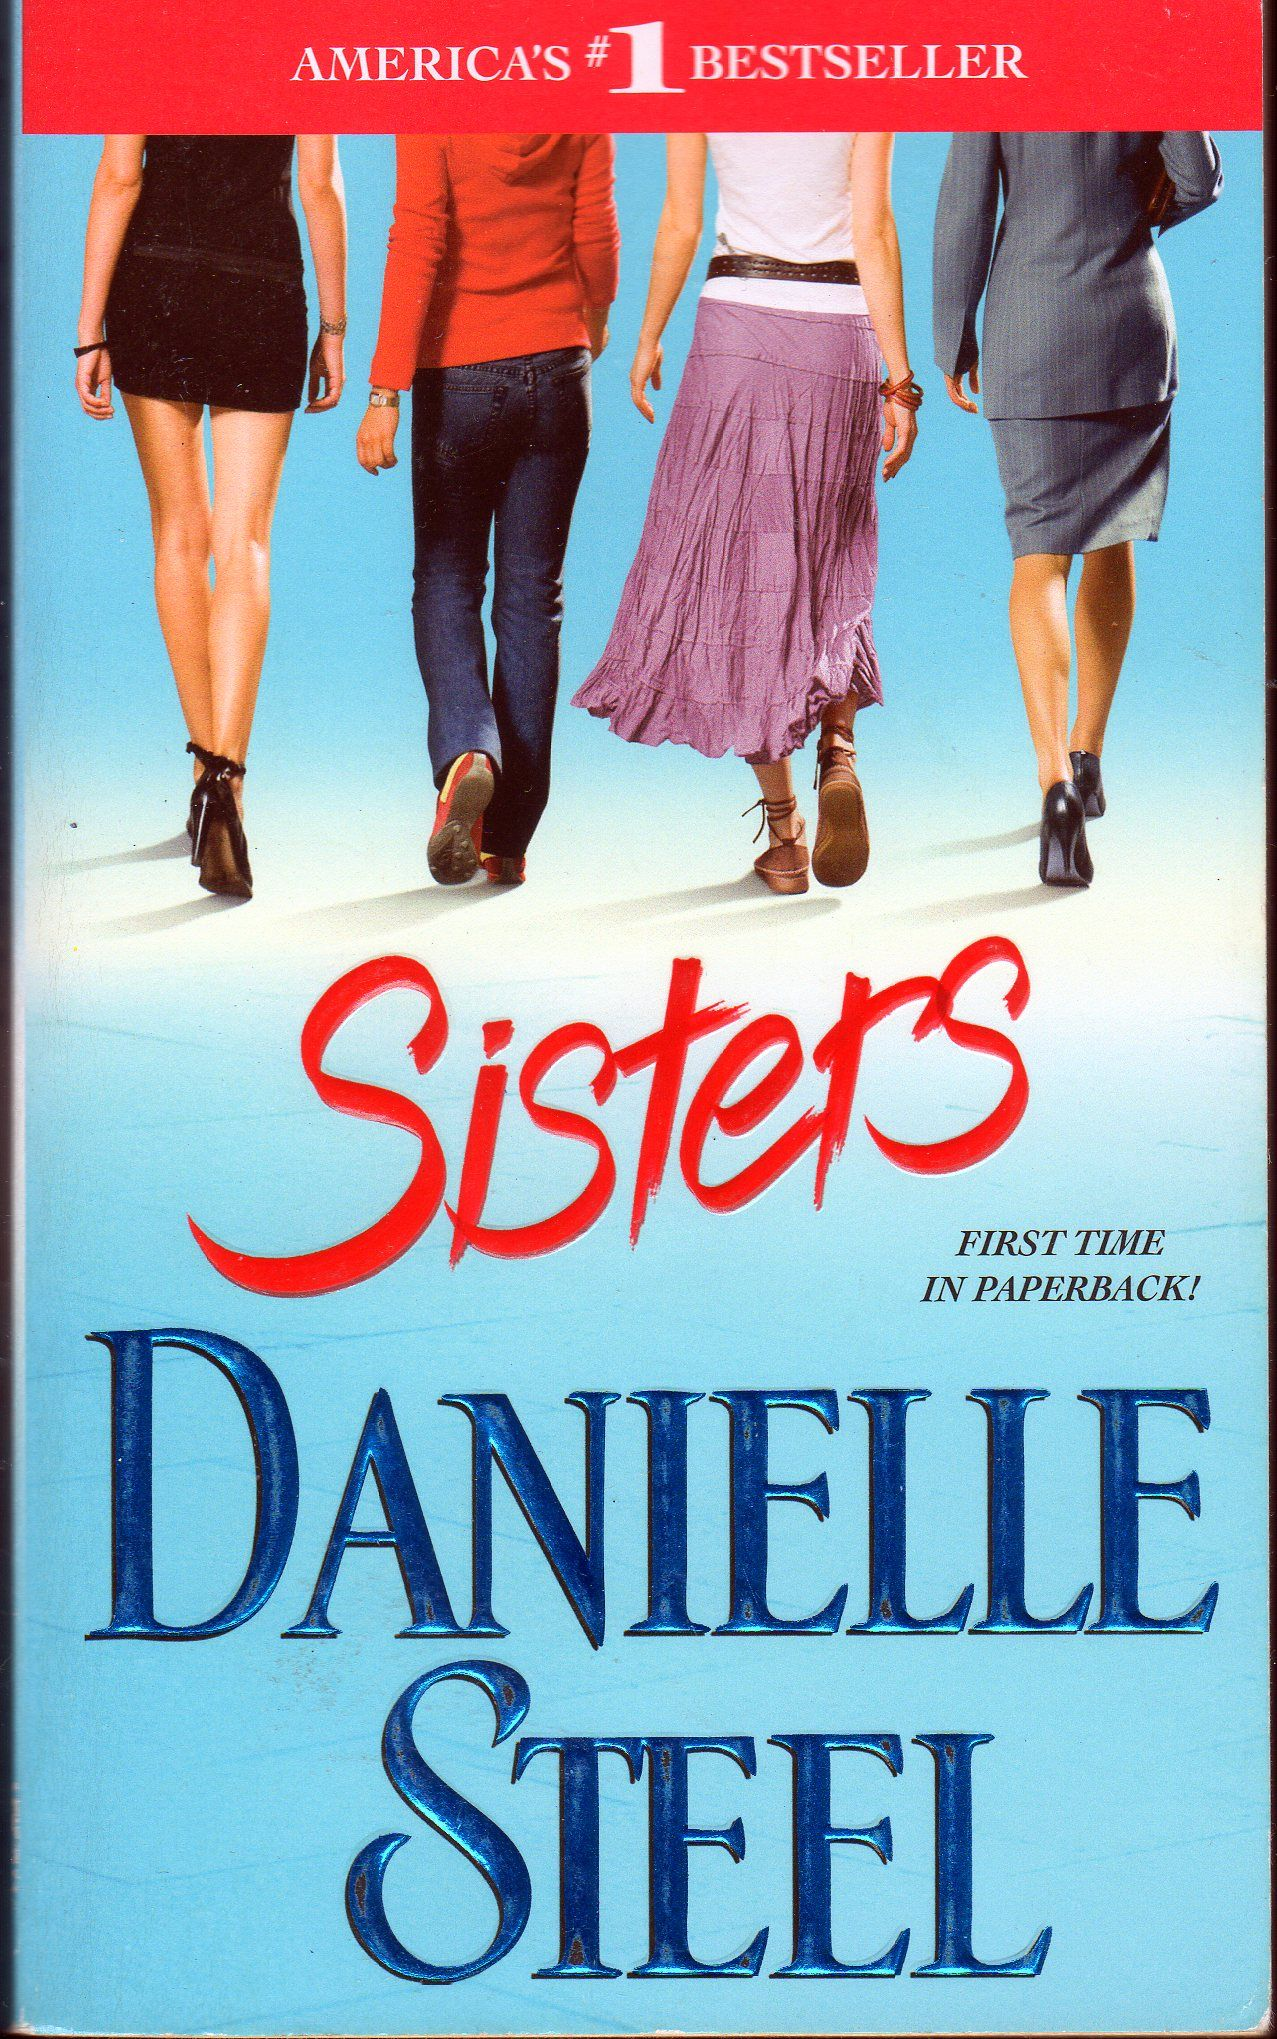 I Use To Love Reading Danielle Steel But Only Certain Ones